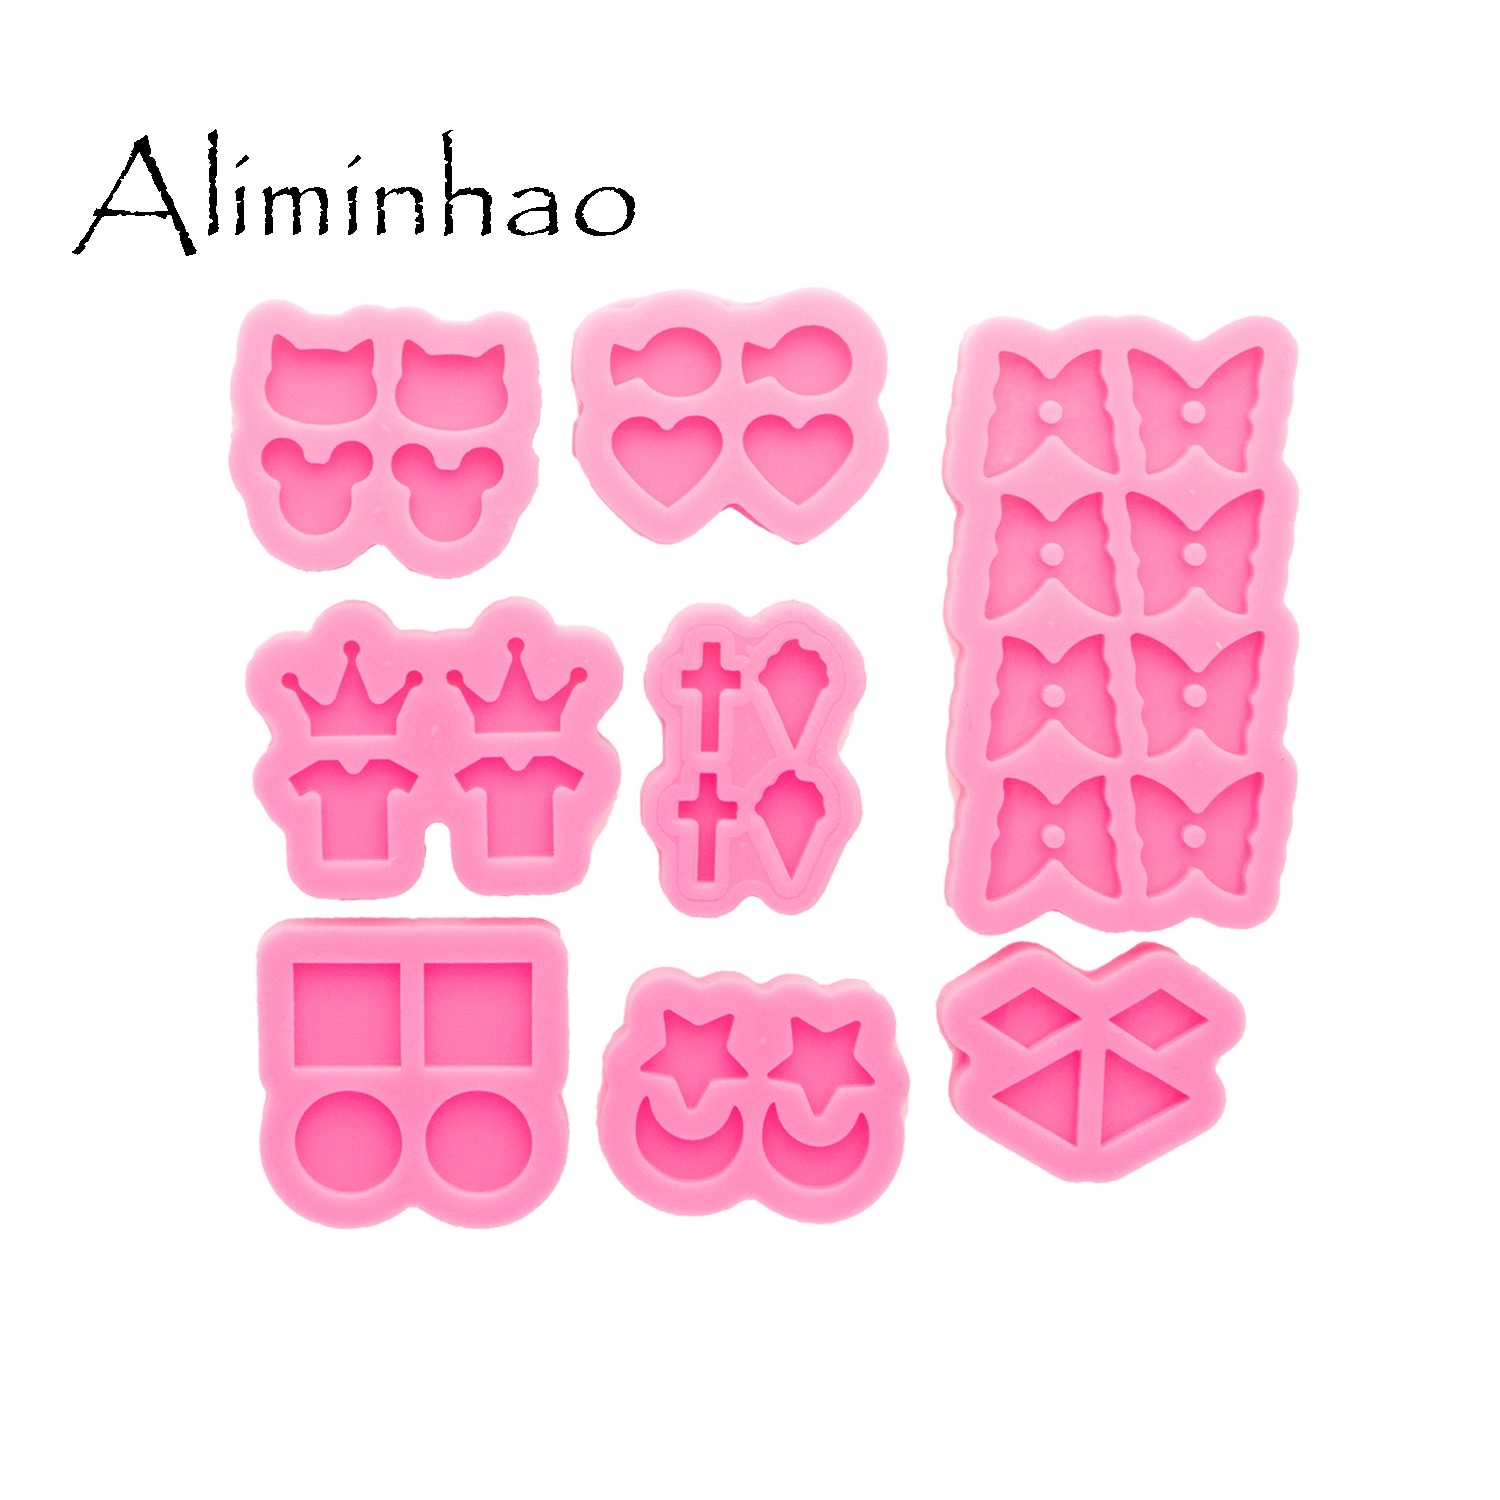 DY0890 Glossy Mini Star/Moon/Mouse/Crown/Heart/Circle Earrings Silicone Mold, Epoxy Resin DIY Craft Jewelry Tool